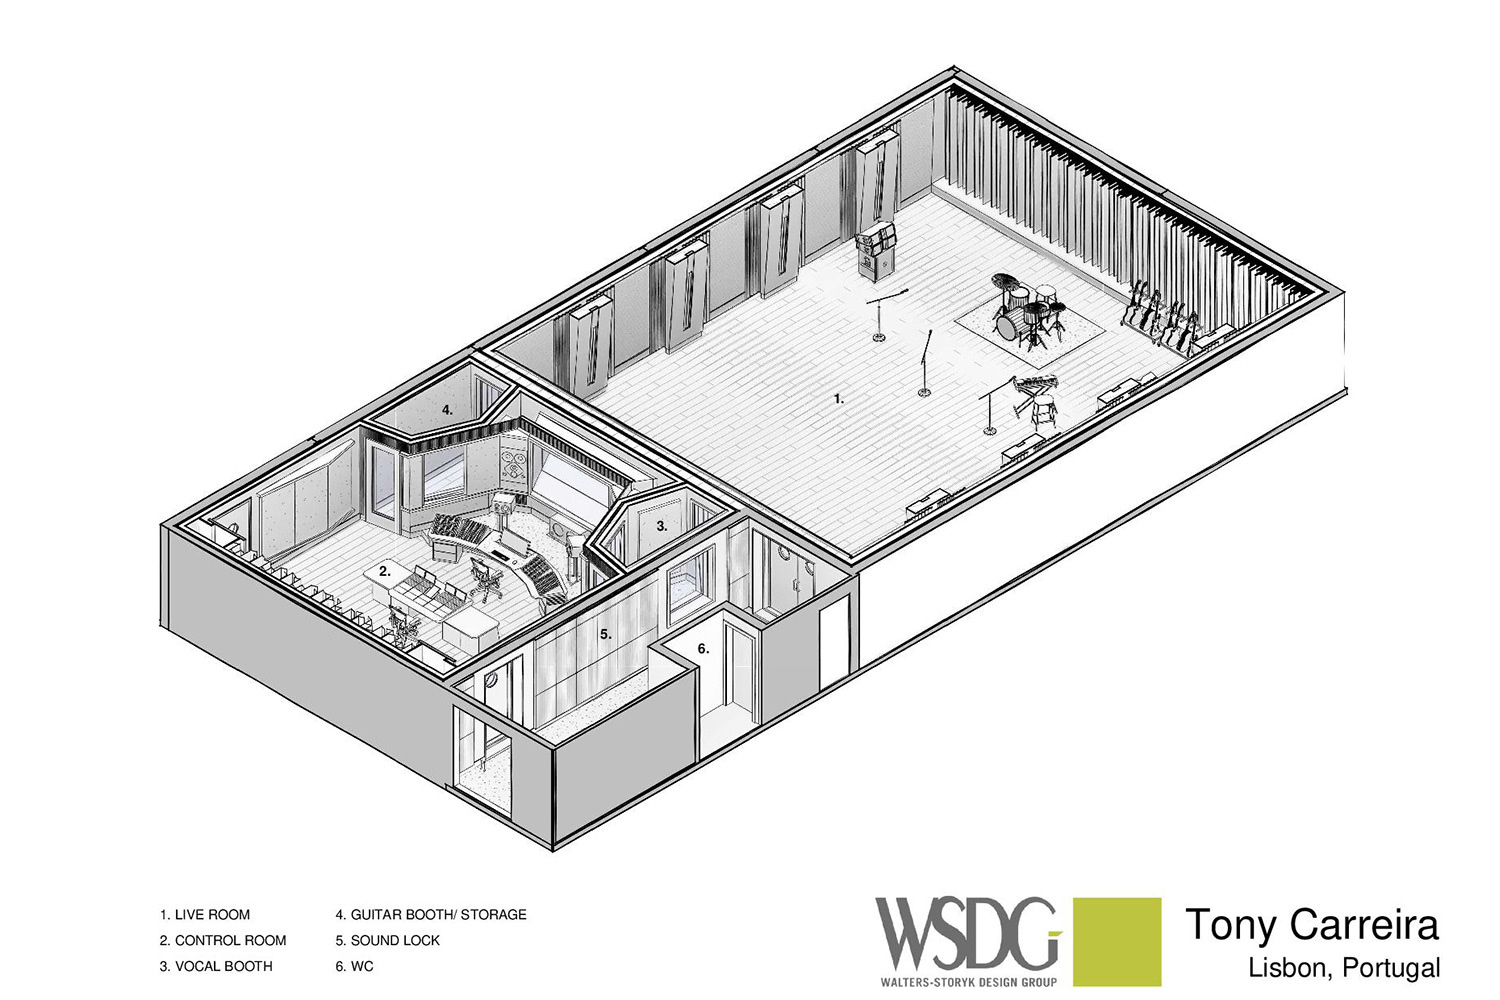 Tony Carreira Studios. WSDG was brought on to redesign the warehouse into a multi-functional recording facility with live streaming and video production capabilities. Axonometric View.